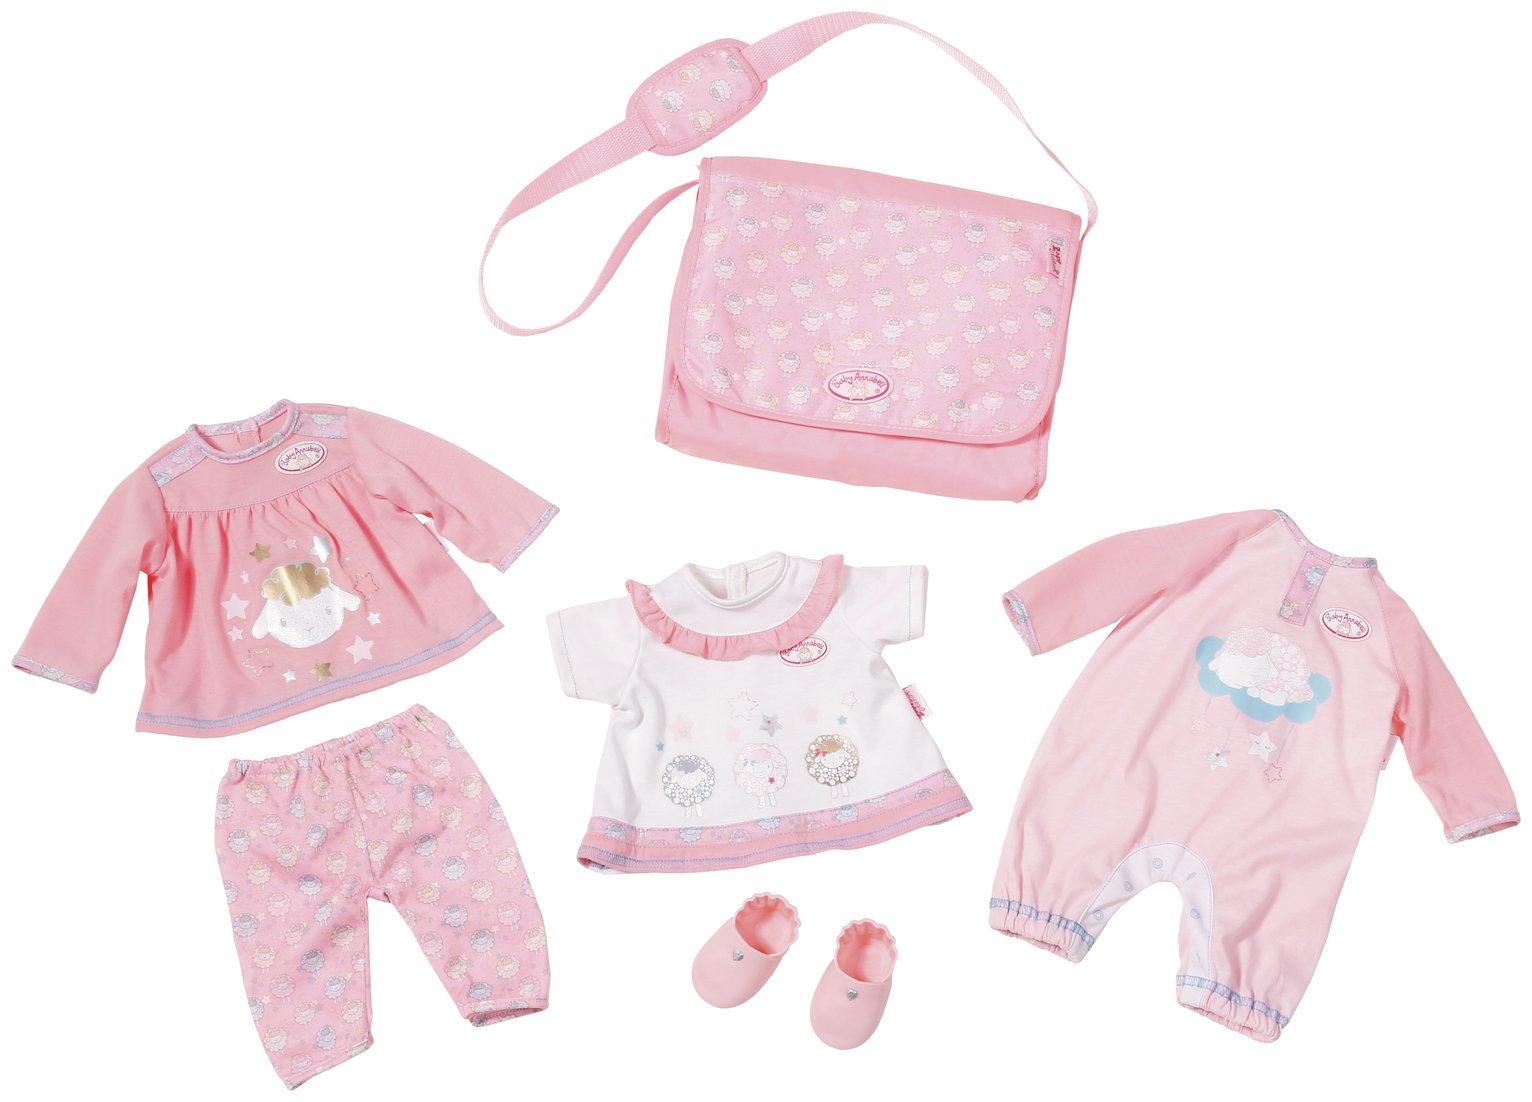 Image of Baby Annabell Great Value Set